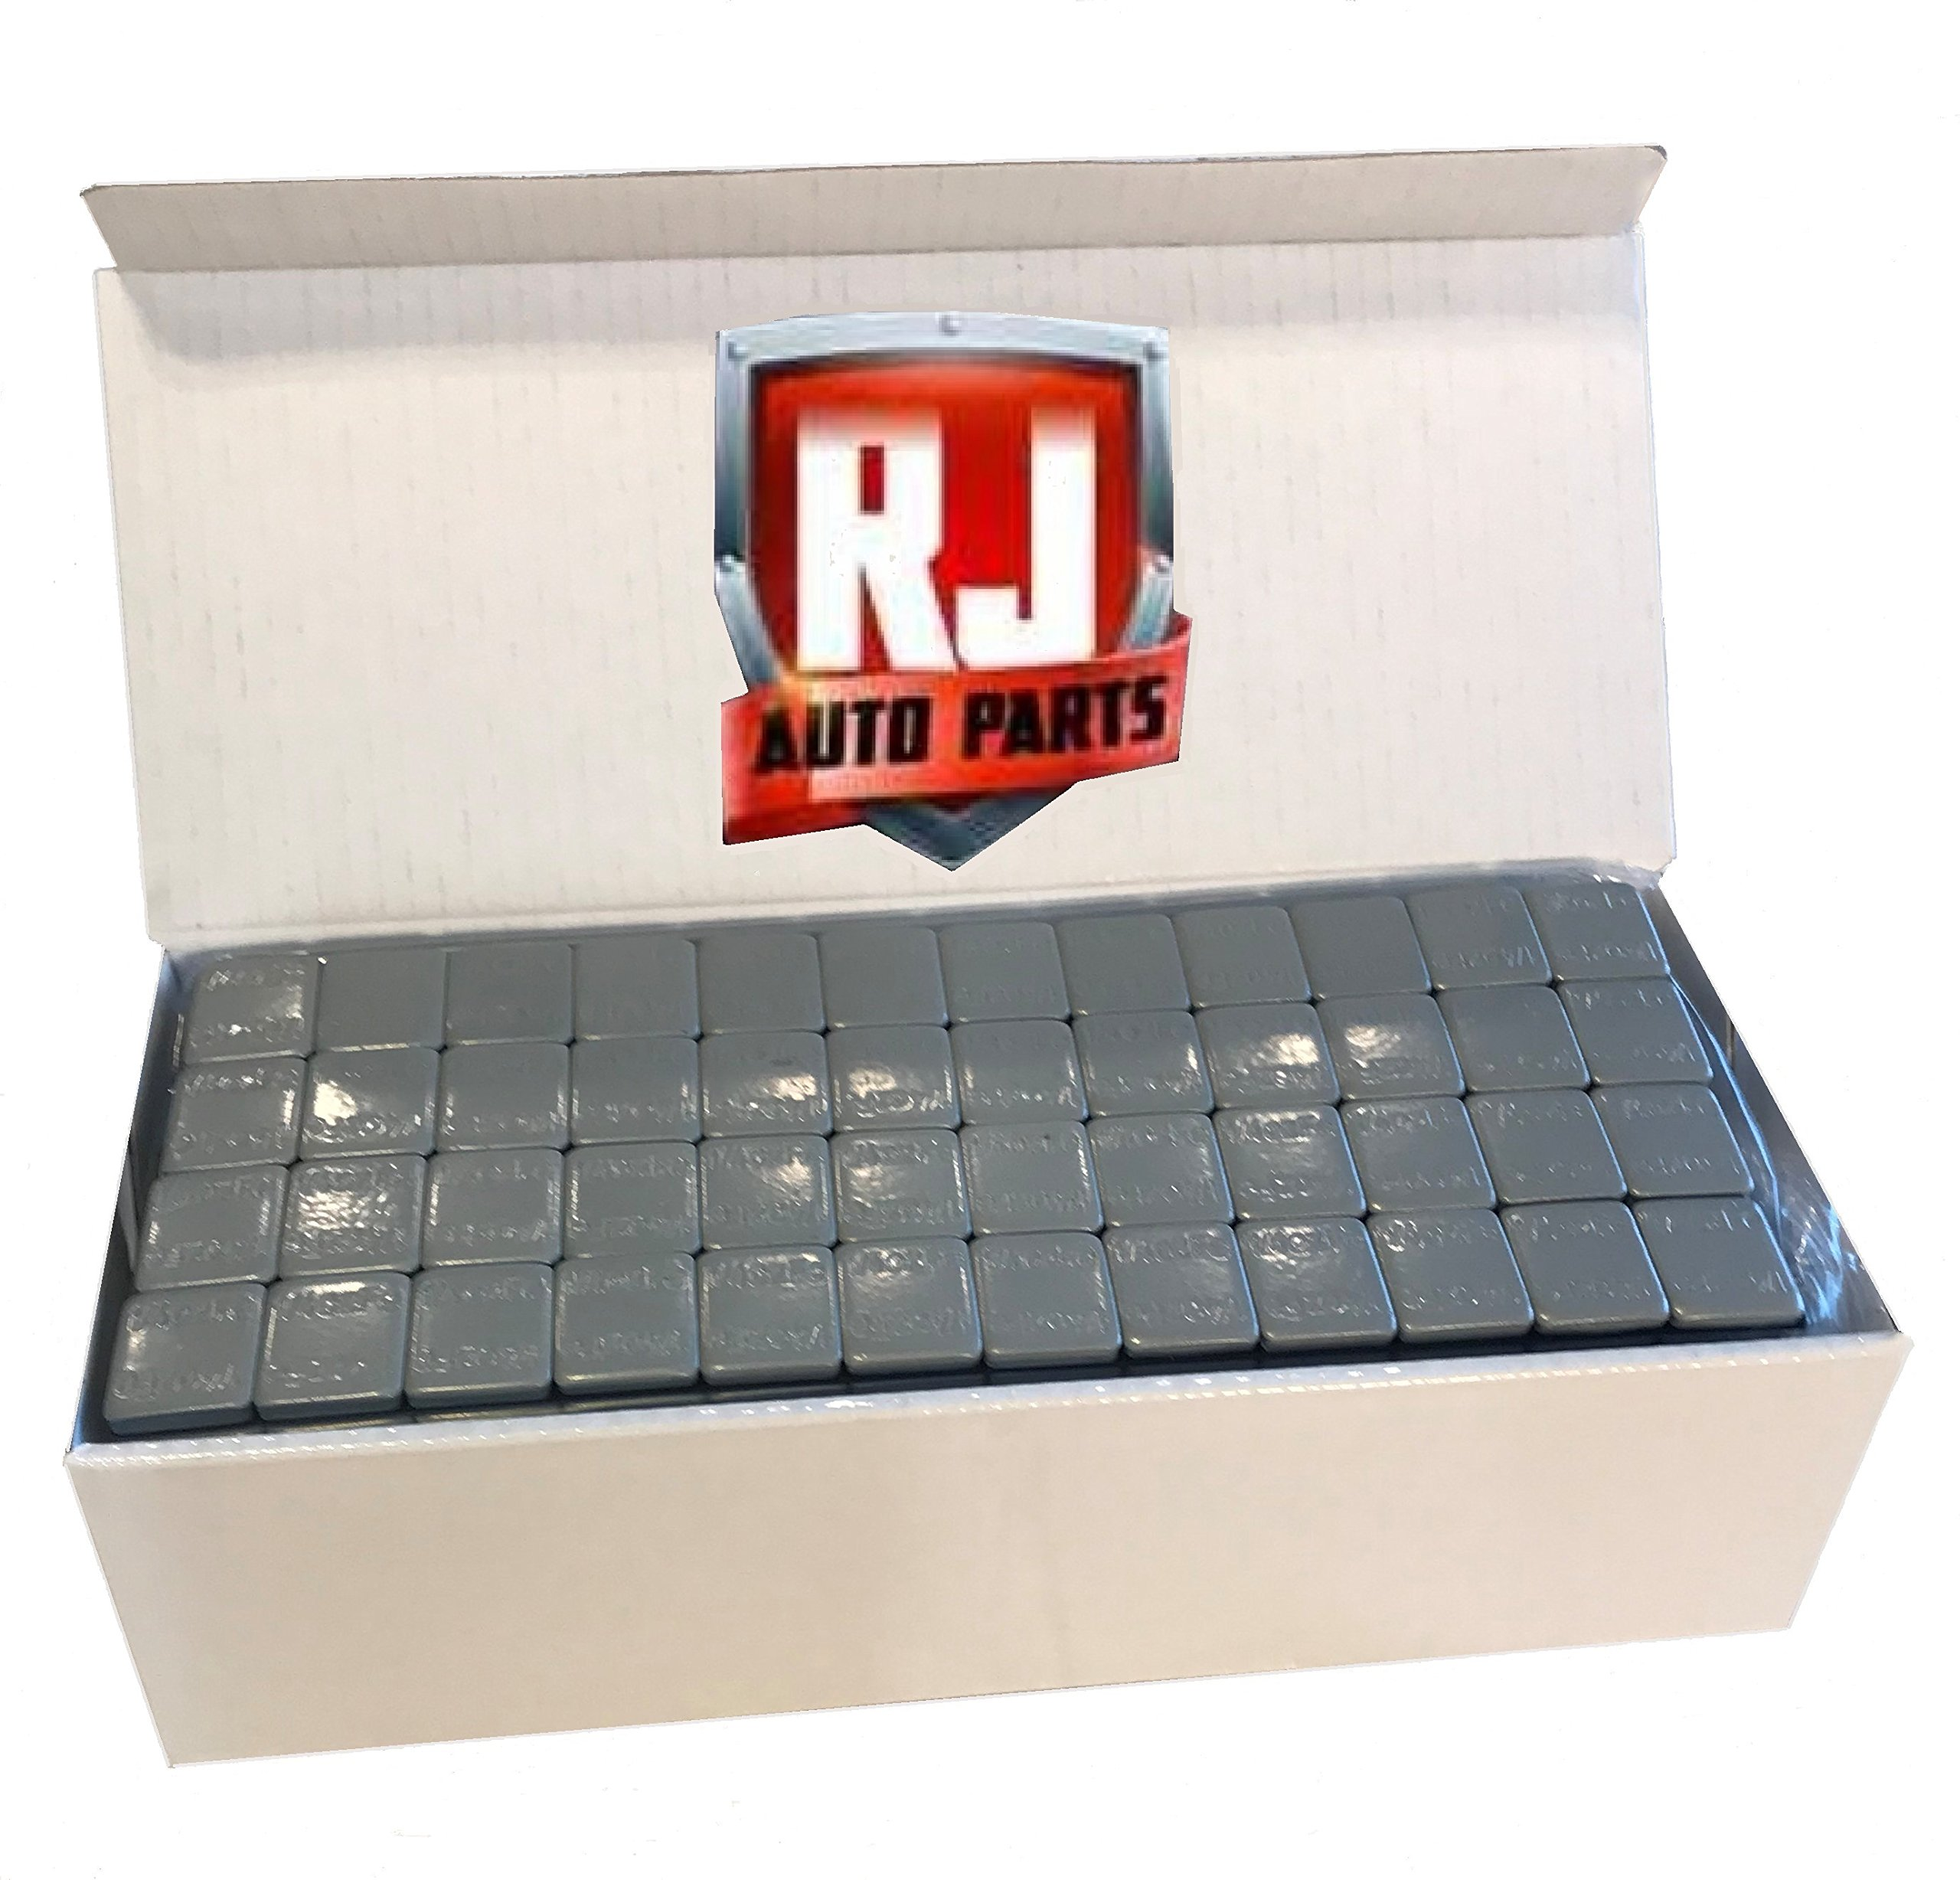 1 Box Wheel Weights Grey 1/4 oz. Stick-on Adhesive Tape, Lead Free (9.75 lbs) 624 Pieces by RJ Auto Parts